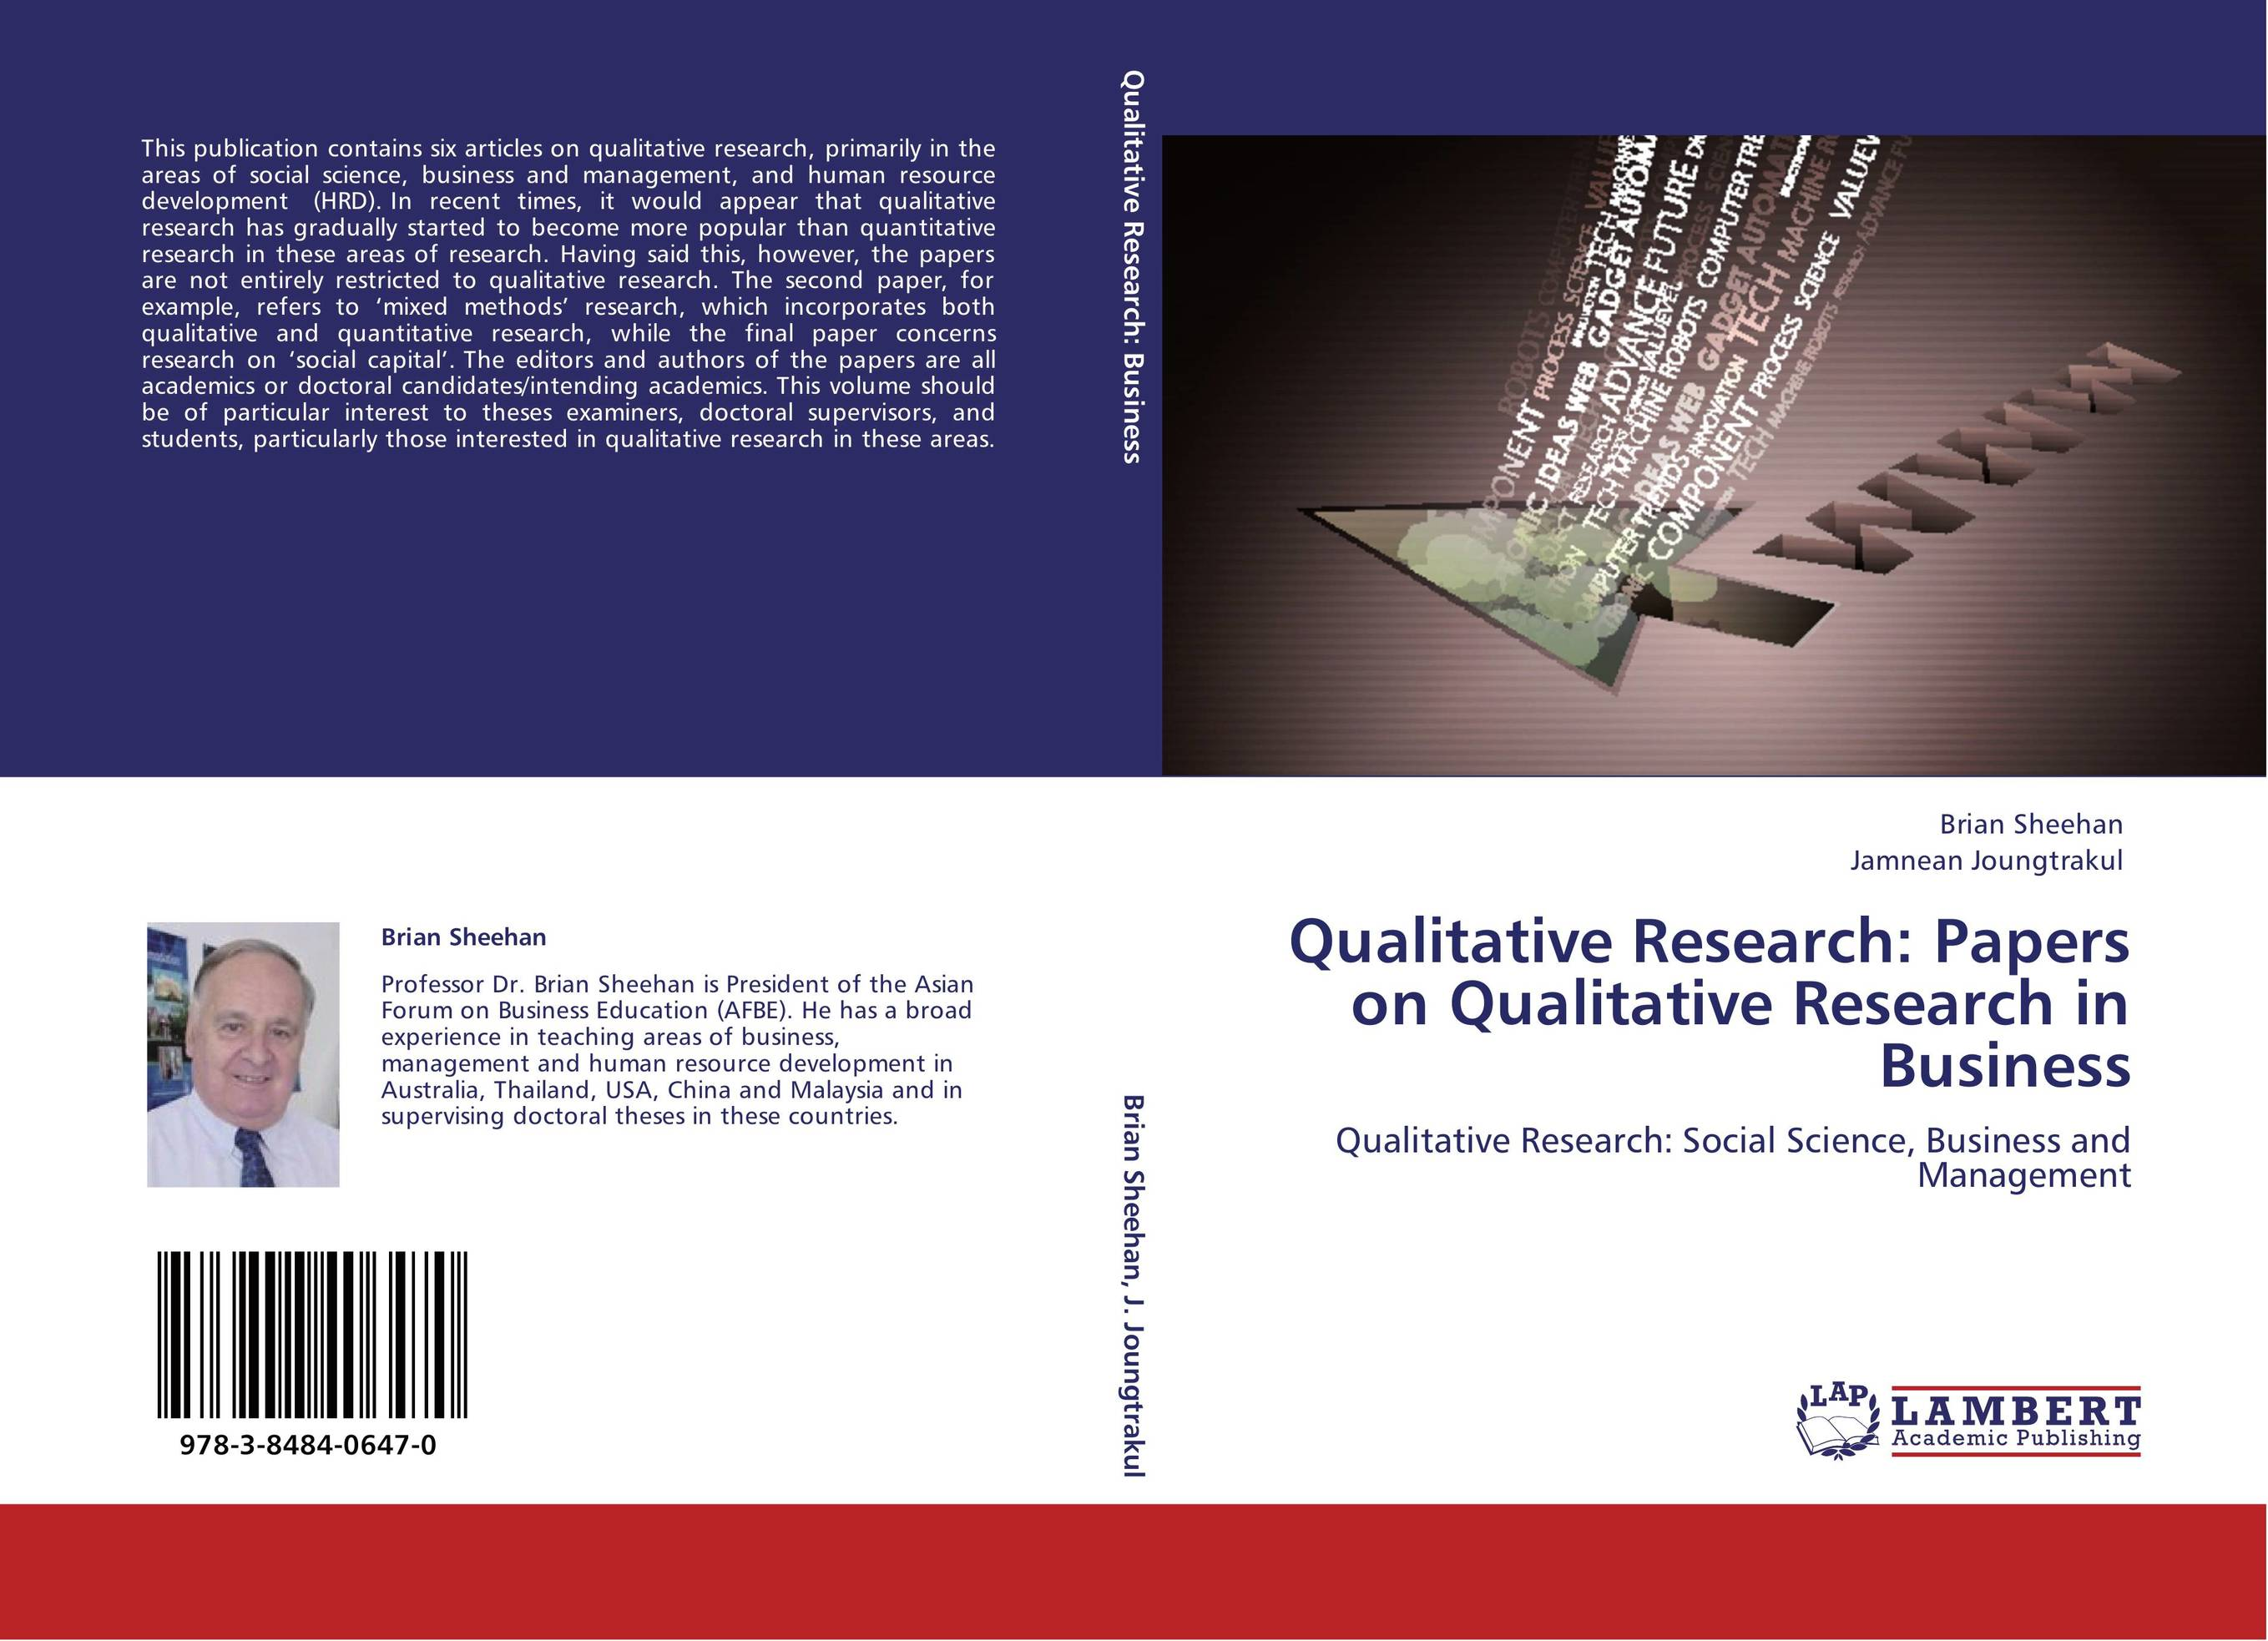 quantitative qualitative research papers The terms qualitative and quantitative apply to two types of perspective reasoning  most research papers will rely on both  quantitative research.